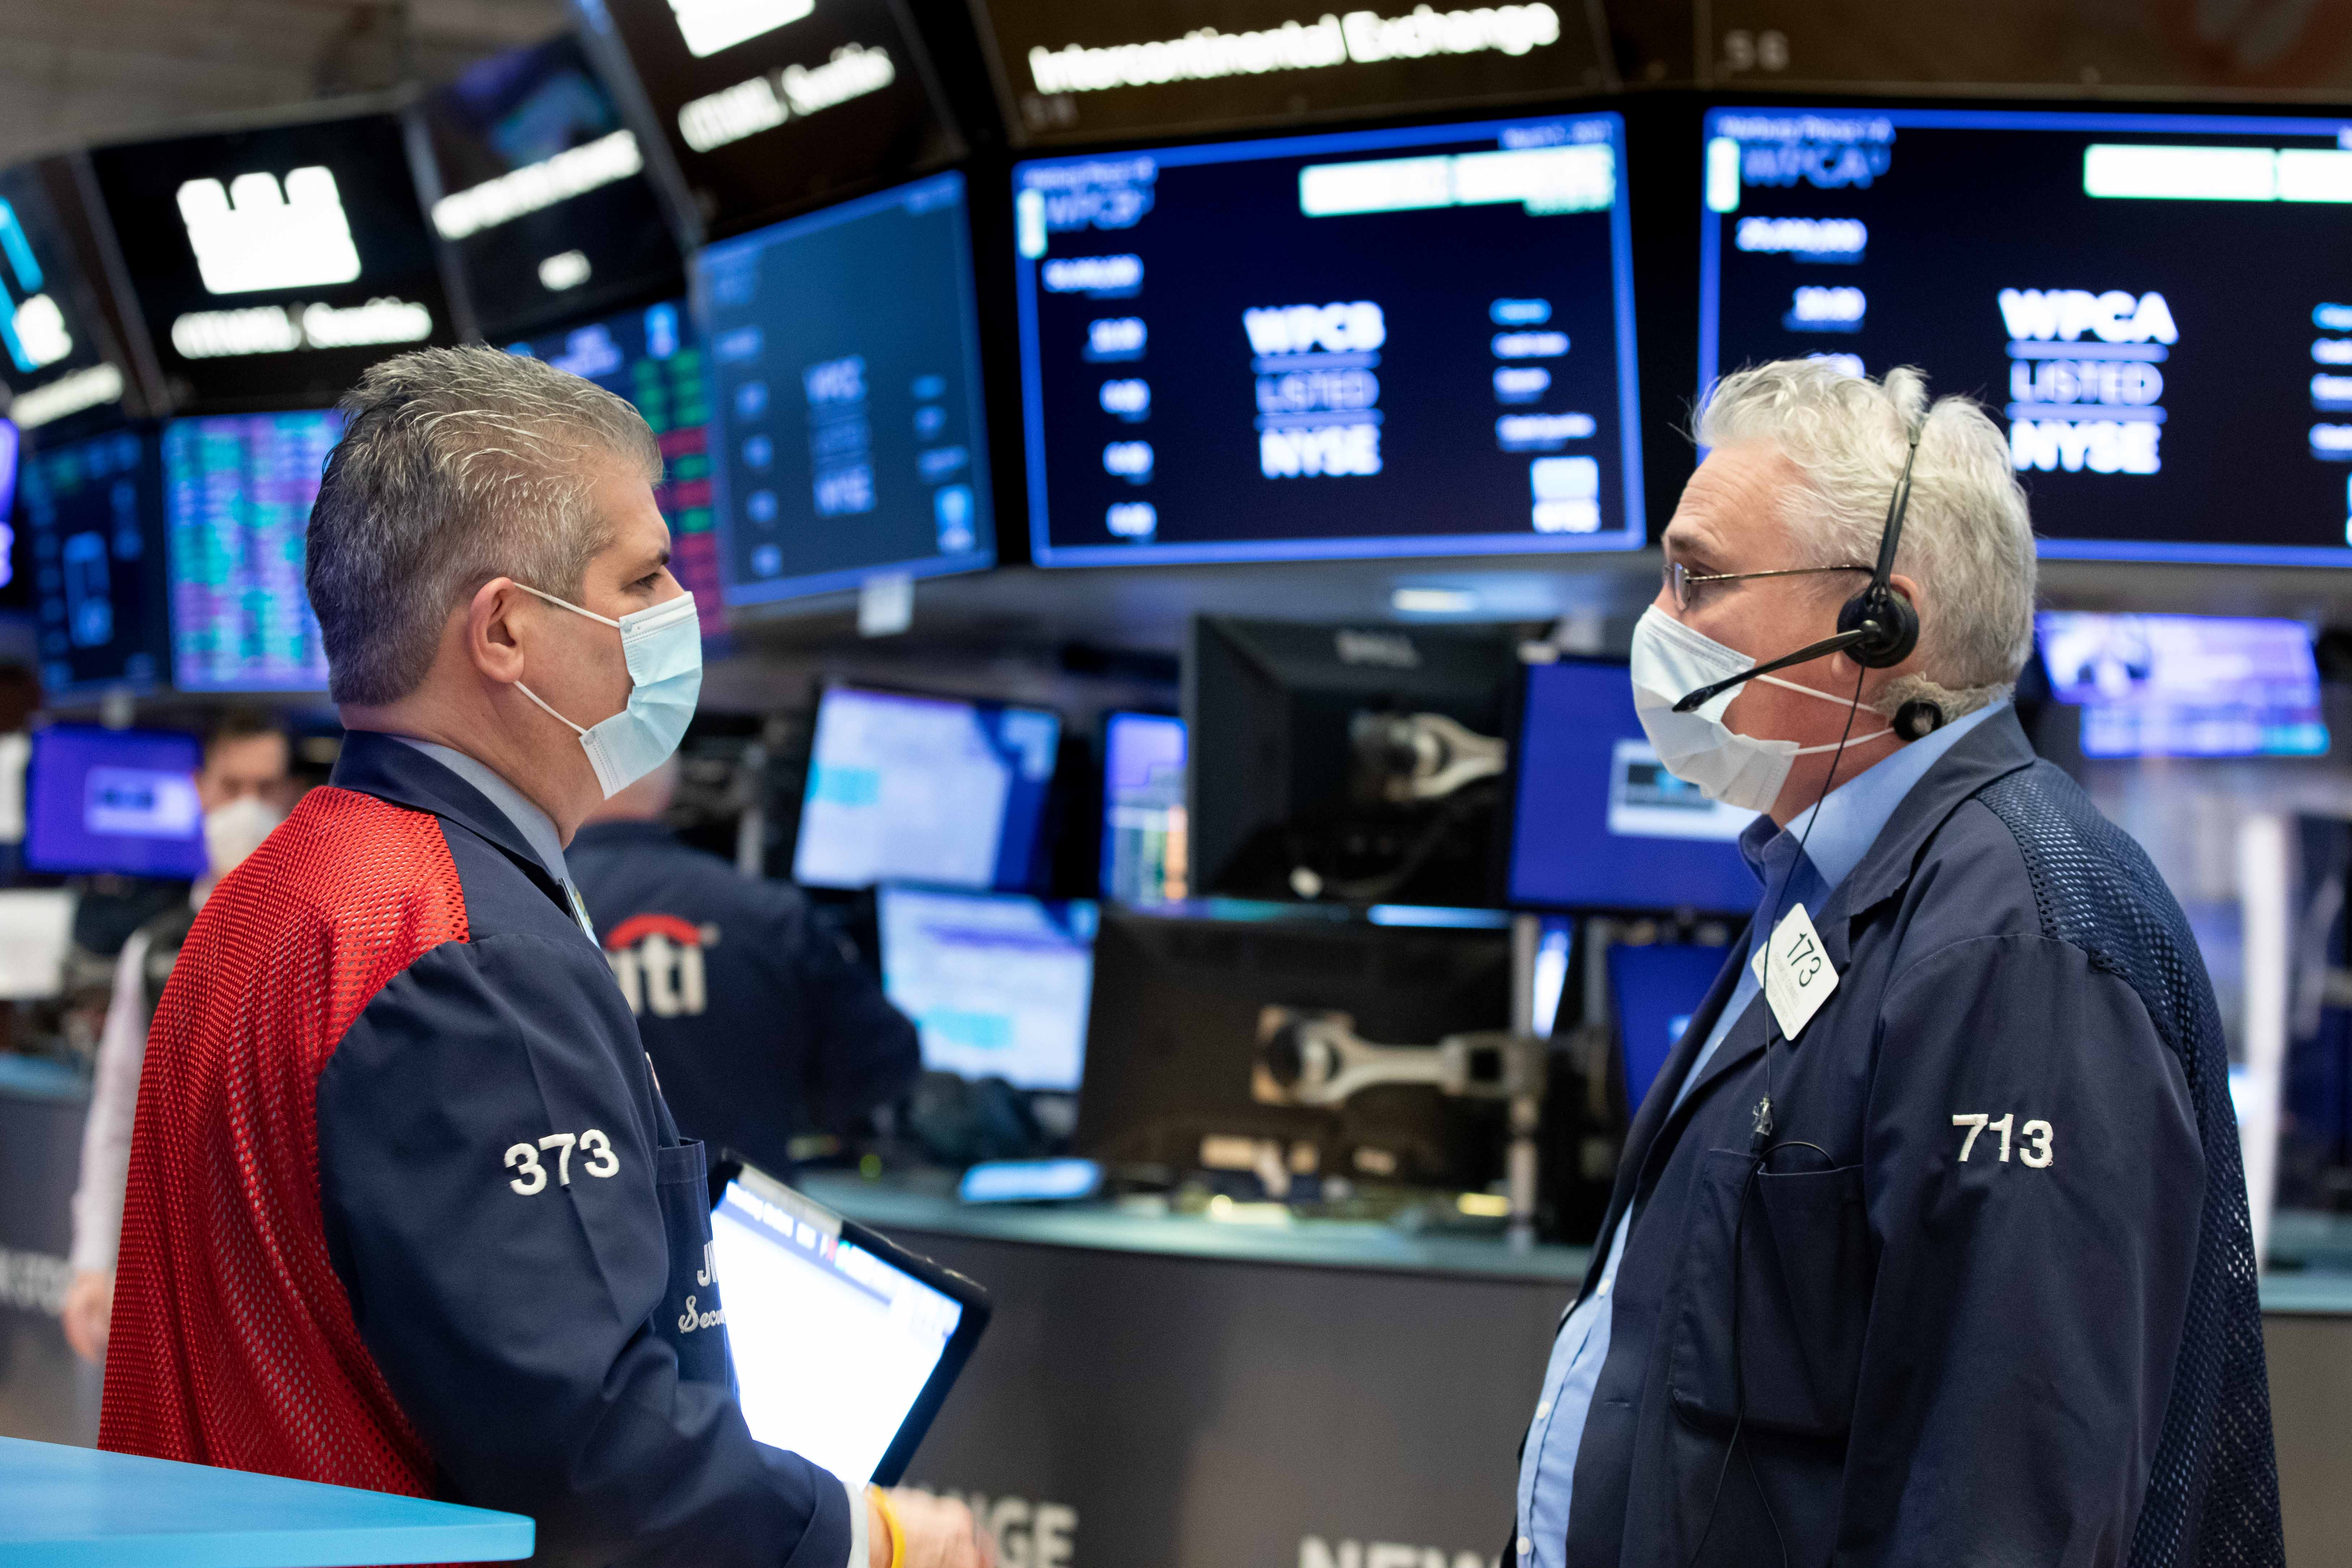 Live for today or trade tomorrow? Breaking down the heated stock market battle unfolding right now - CNBC